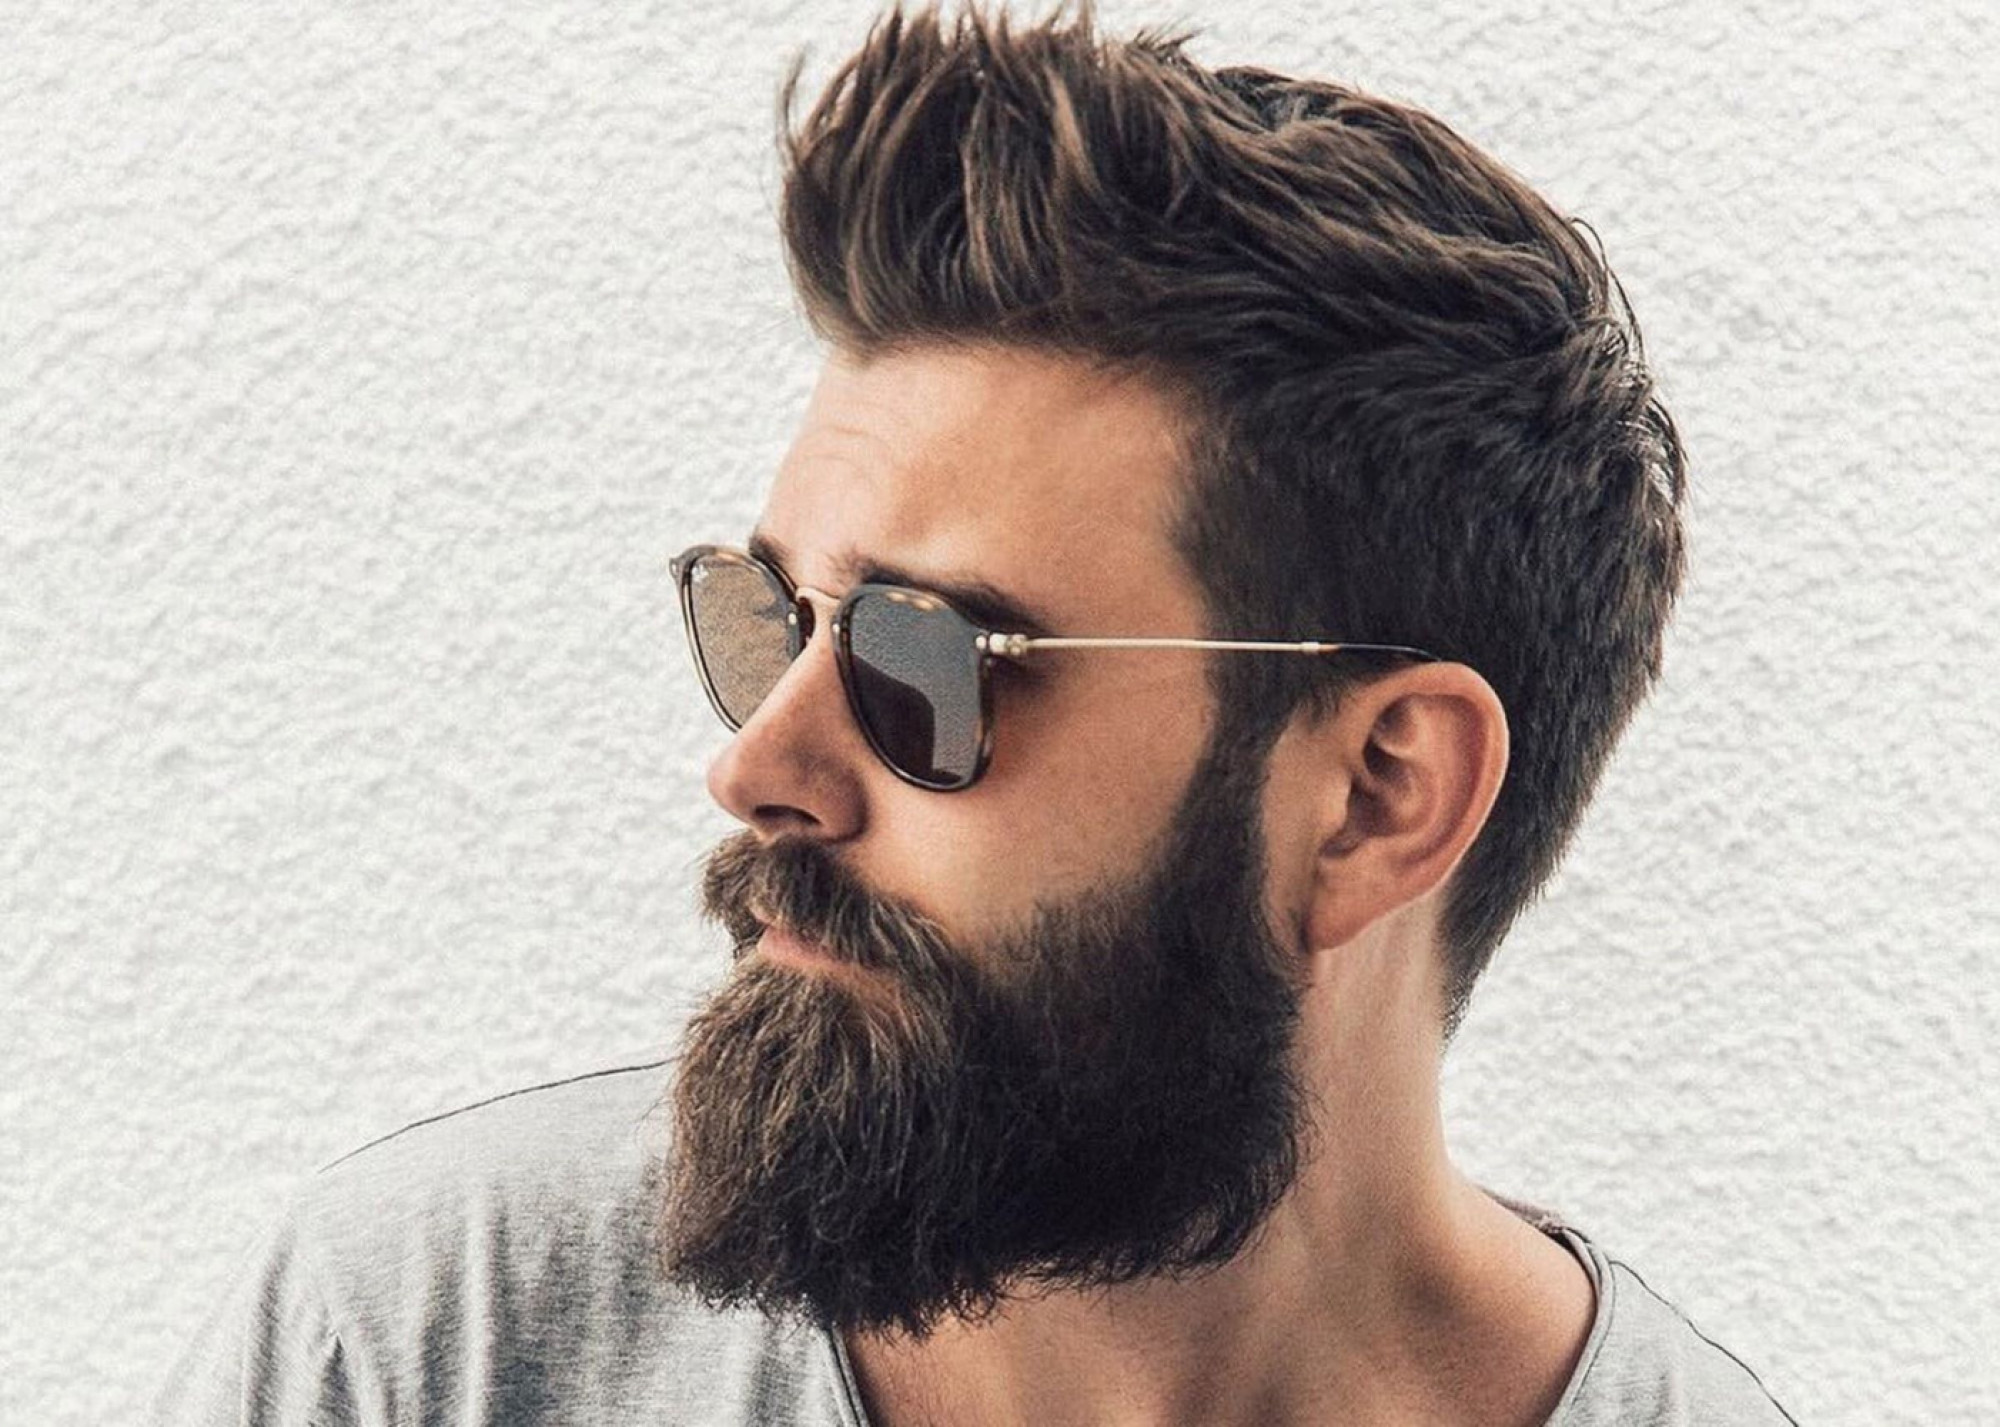 What do beards symbolize and the different styles men wear